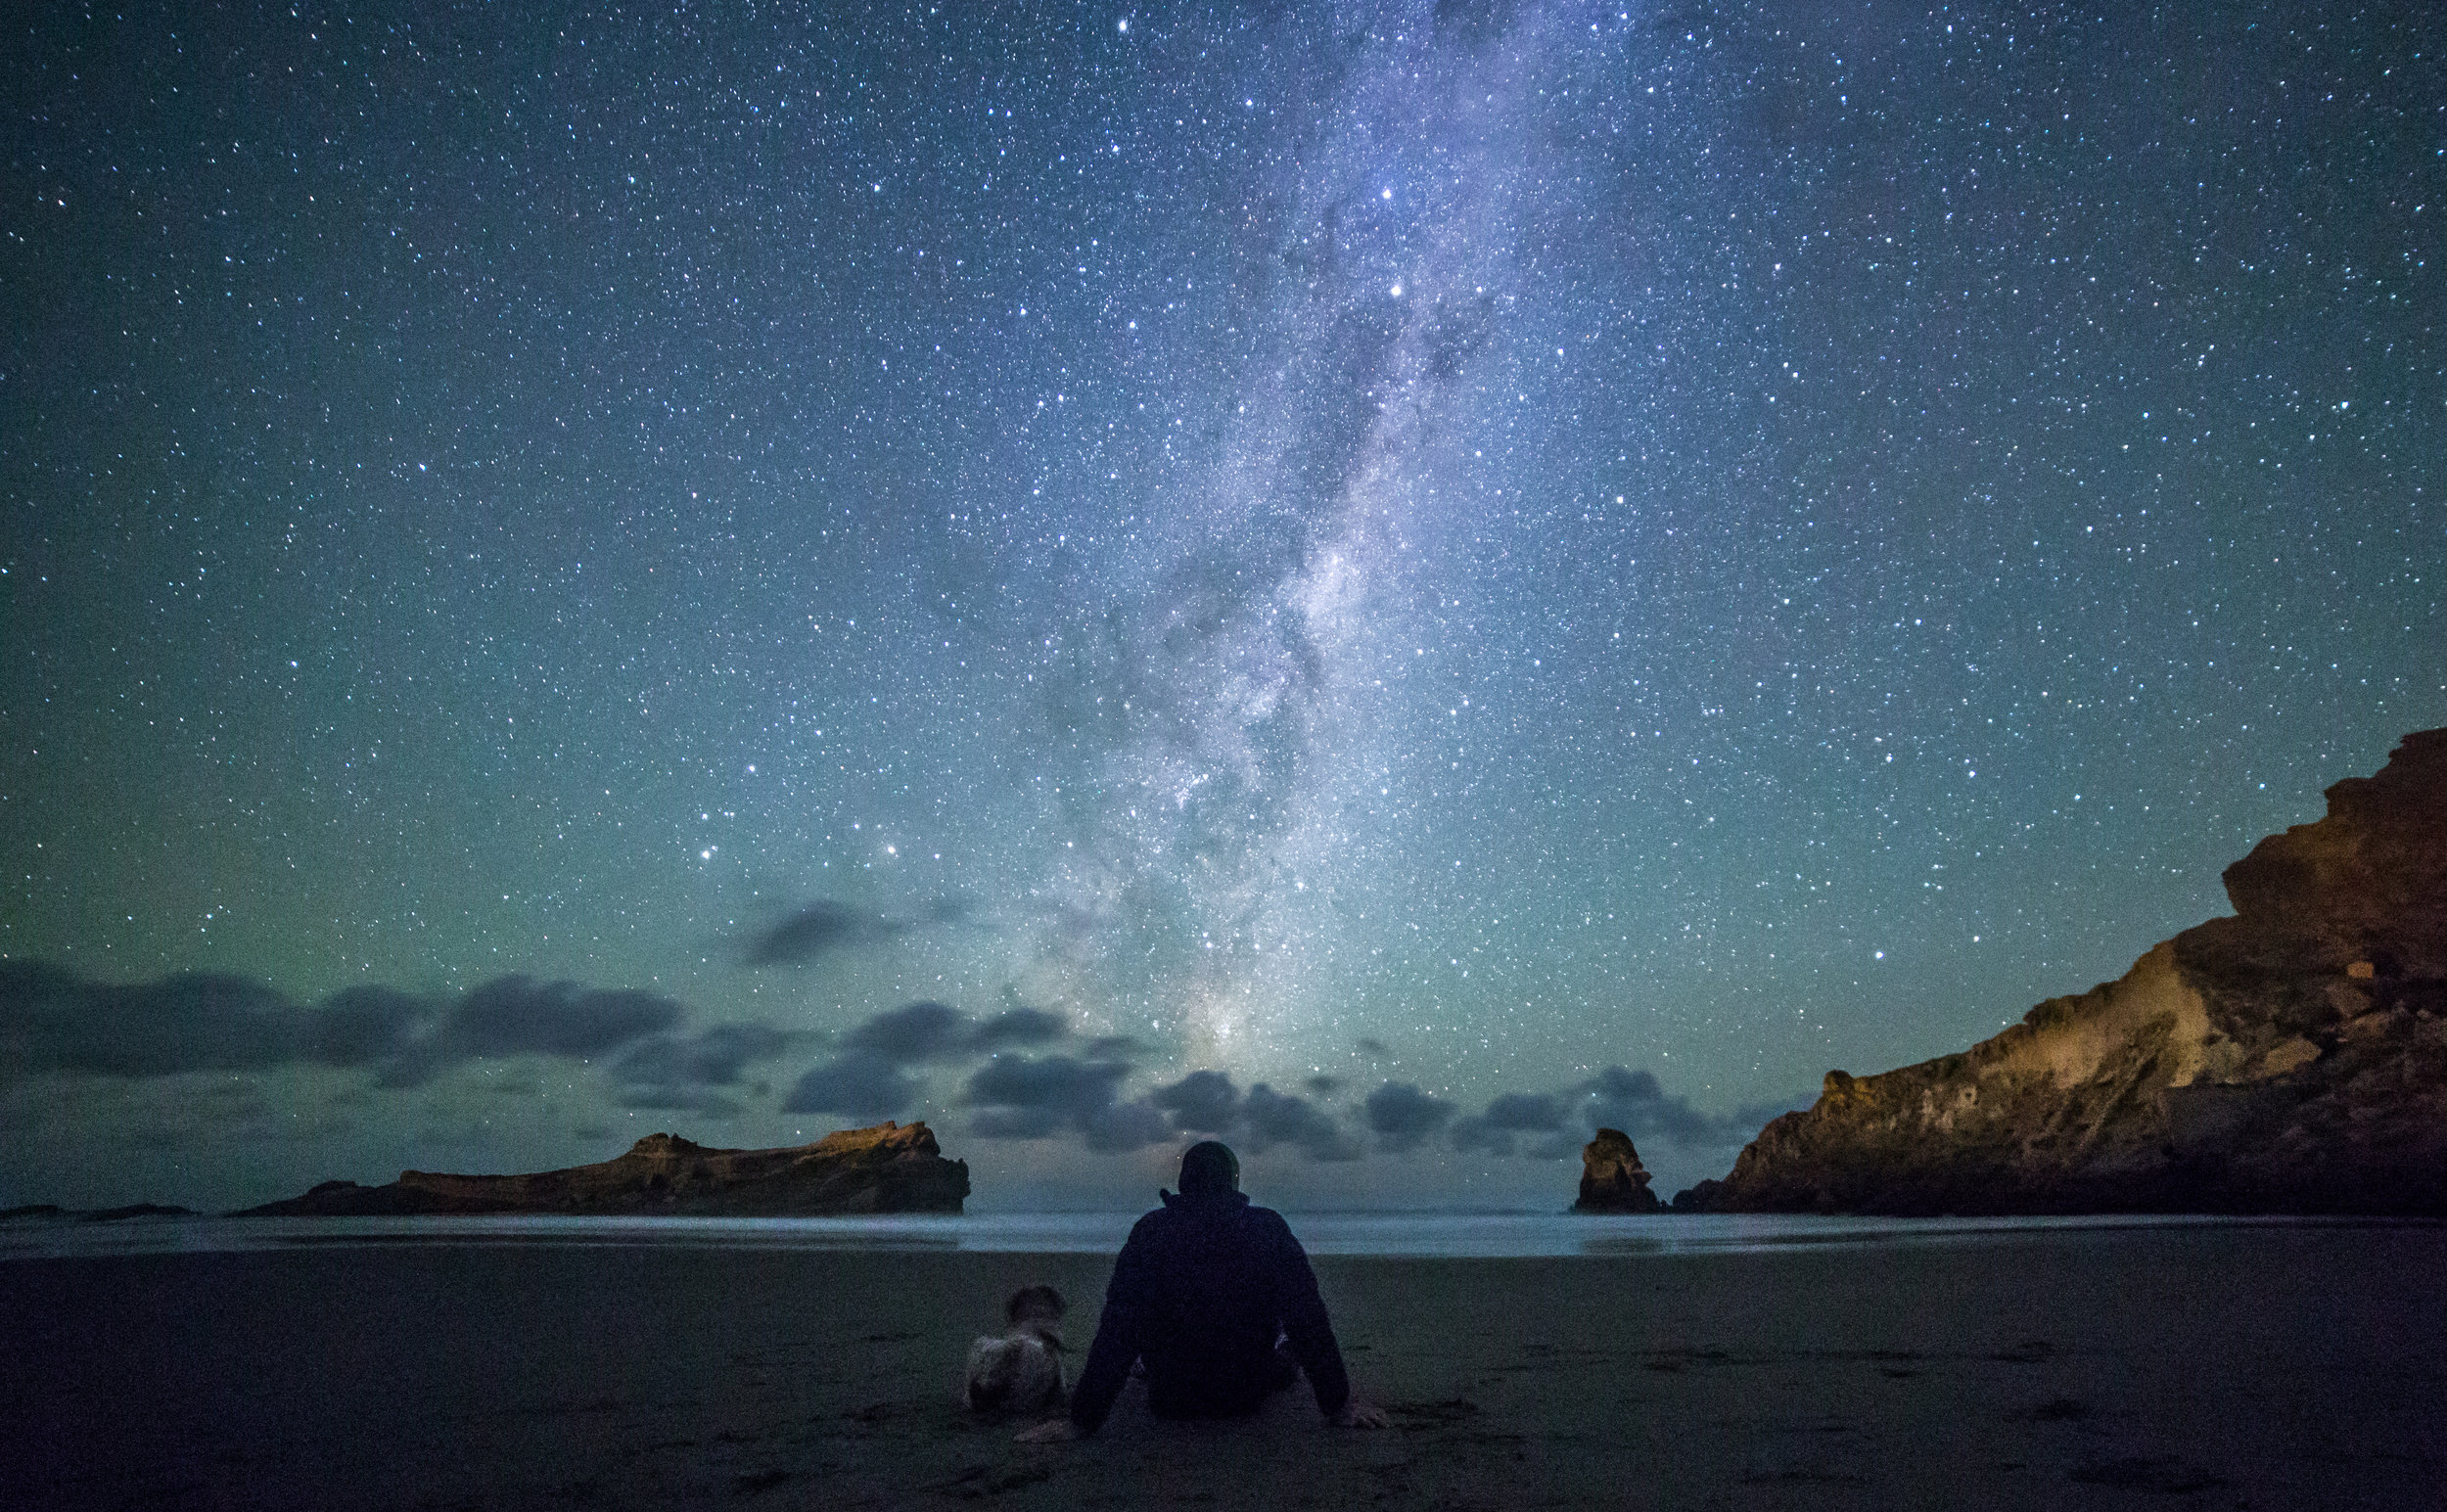 New Zealand nighttime sky.jpg